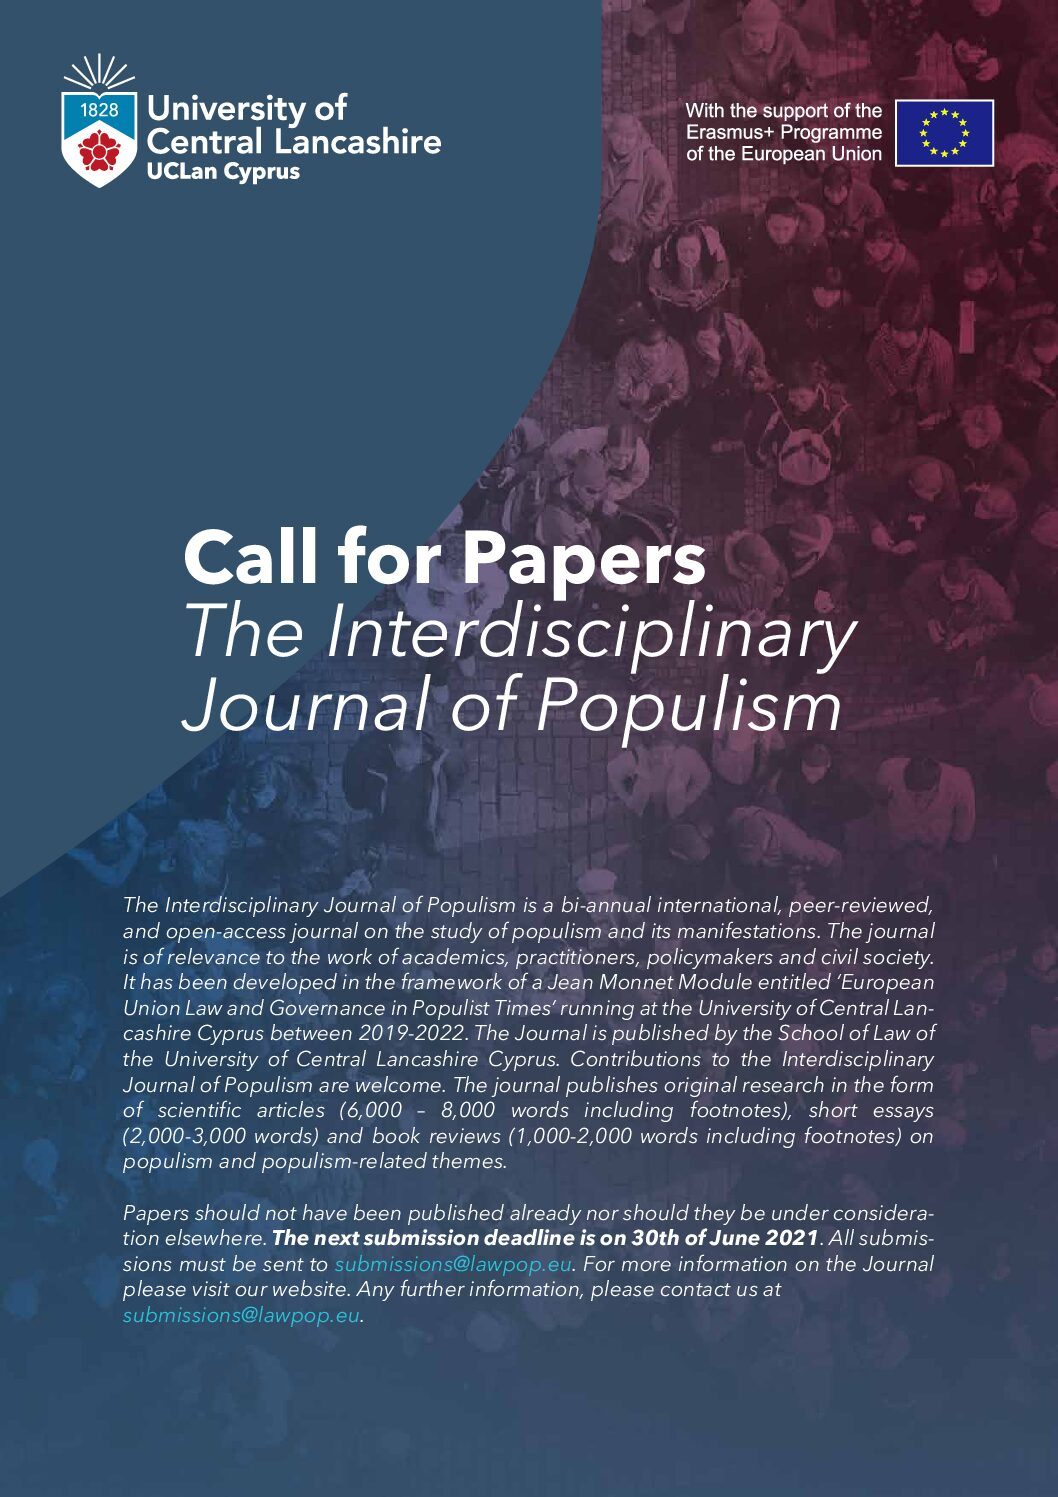 Call for Papers The Interdisciplinary Journal of Populism